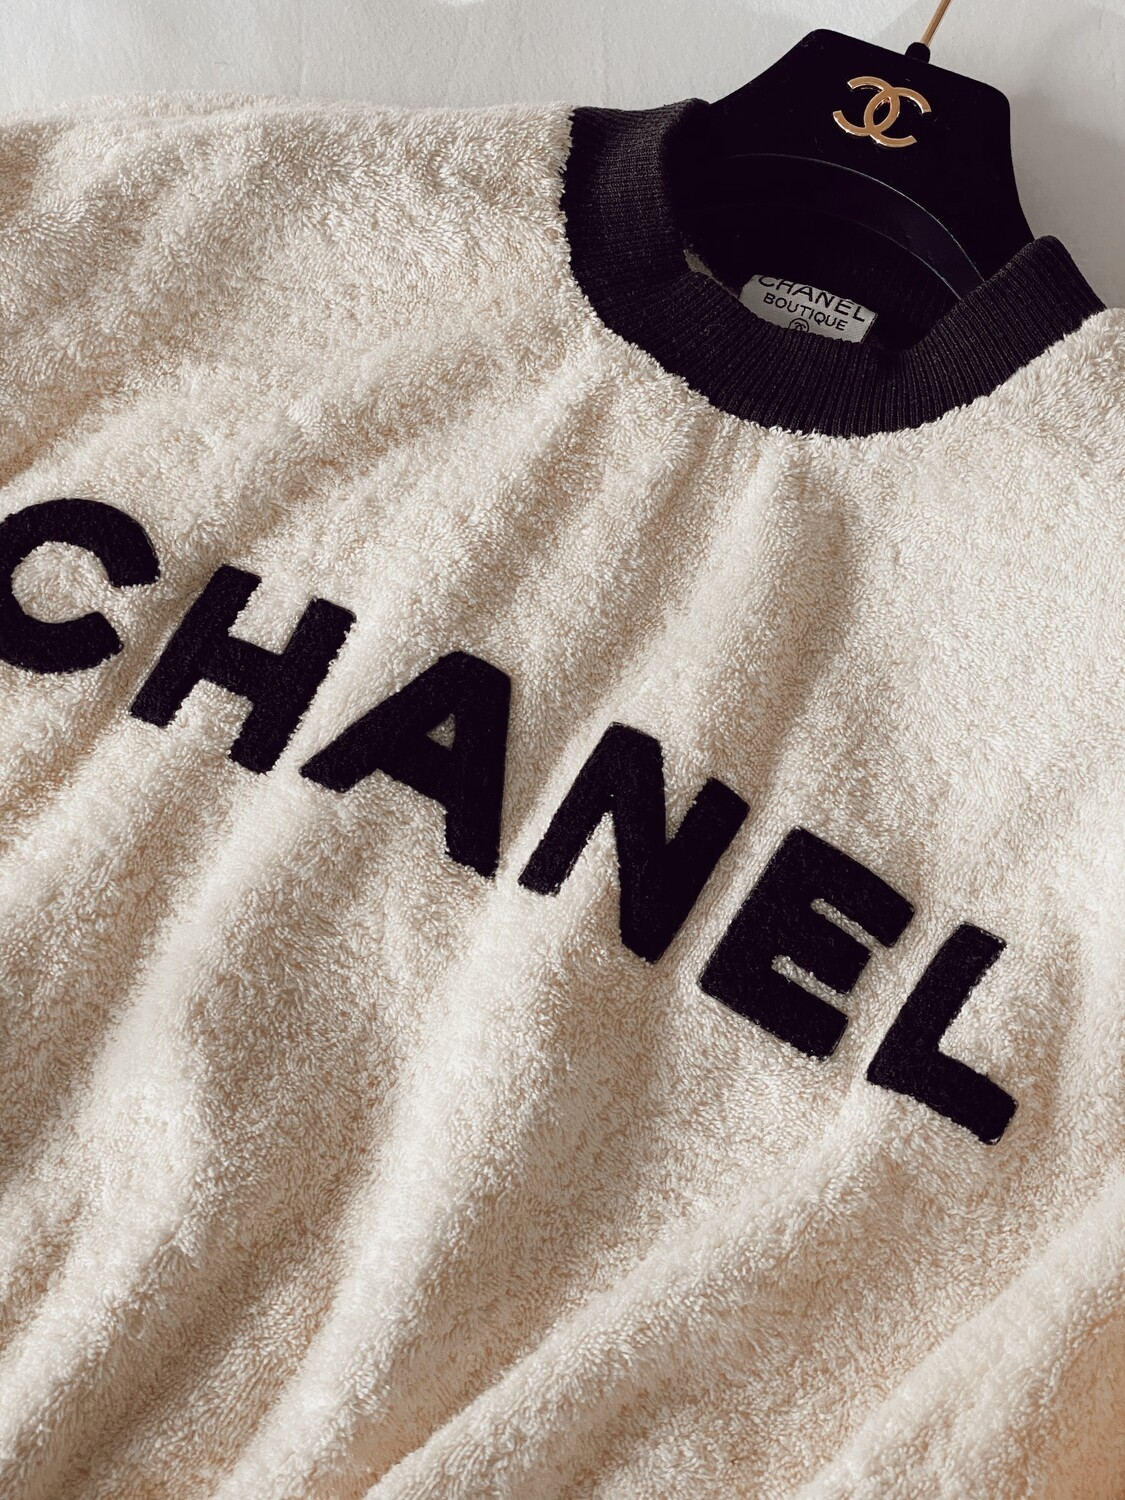 CHANEL 90'S LETTER MONOGRAM LOGO IVORY / BLACK TERRY CLOTH TOP SWEATER - VINTAGE